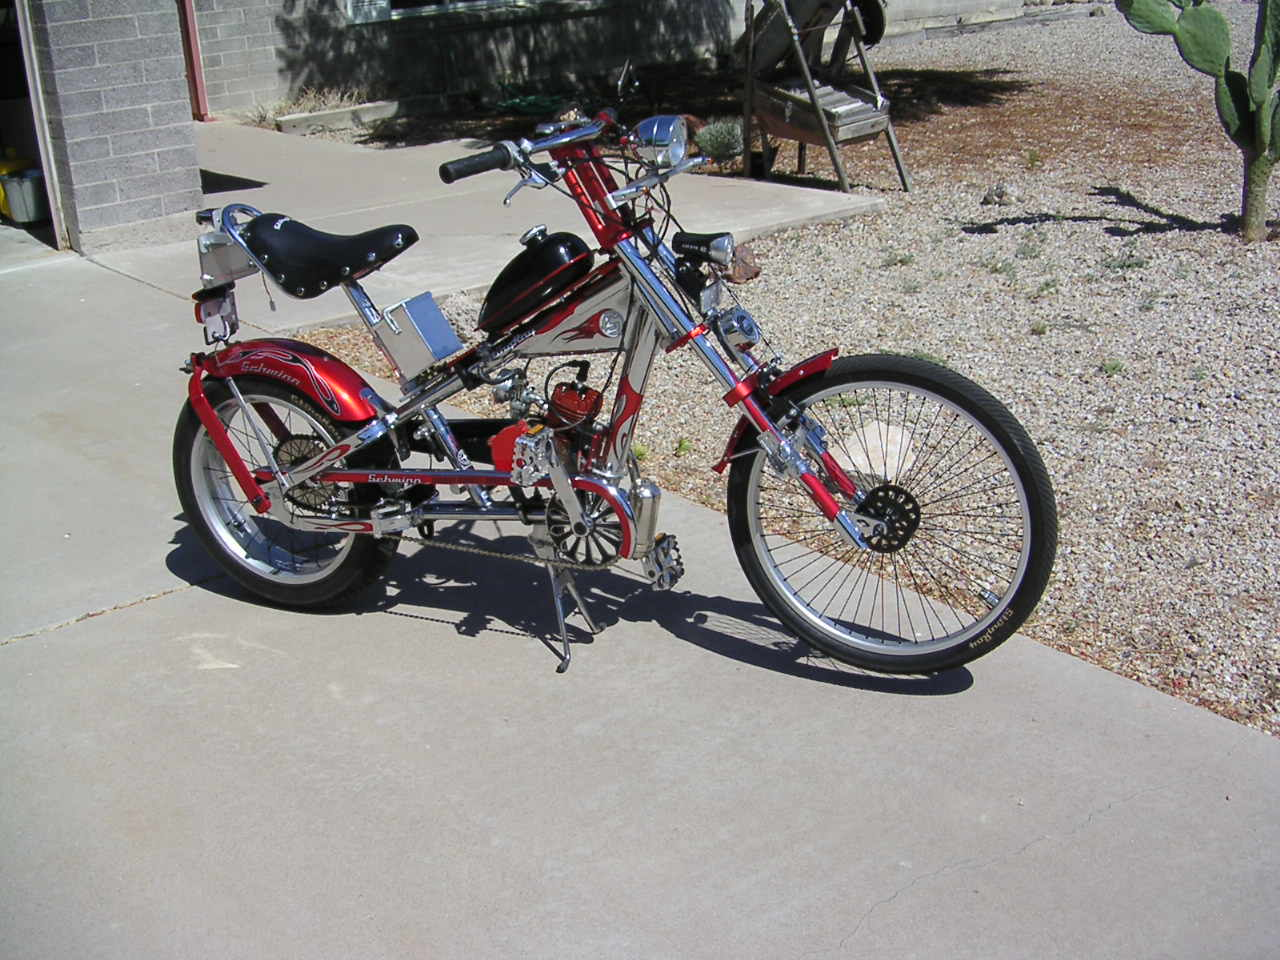 occ-schwinn-chopper-standard-and-xl-models-014.jpg